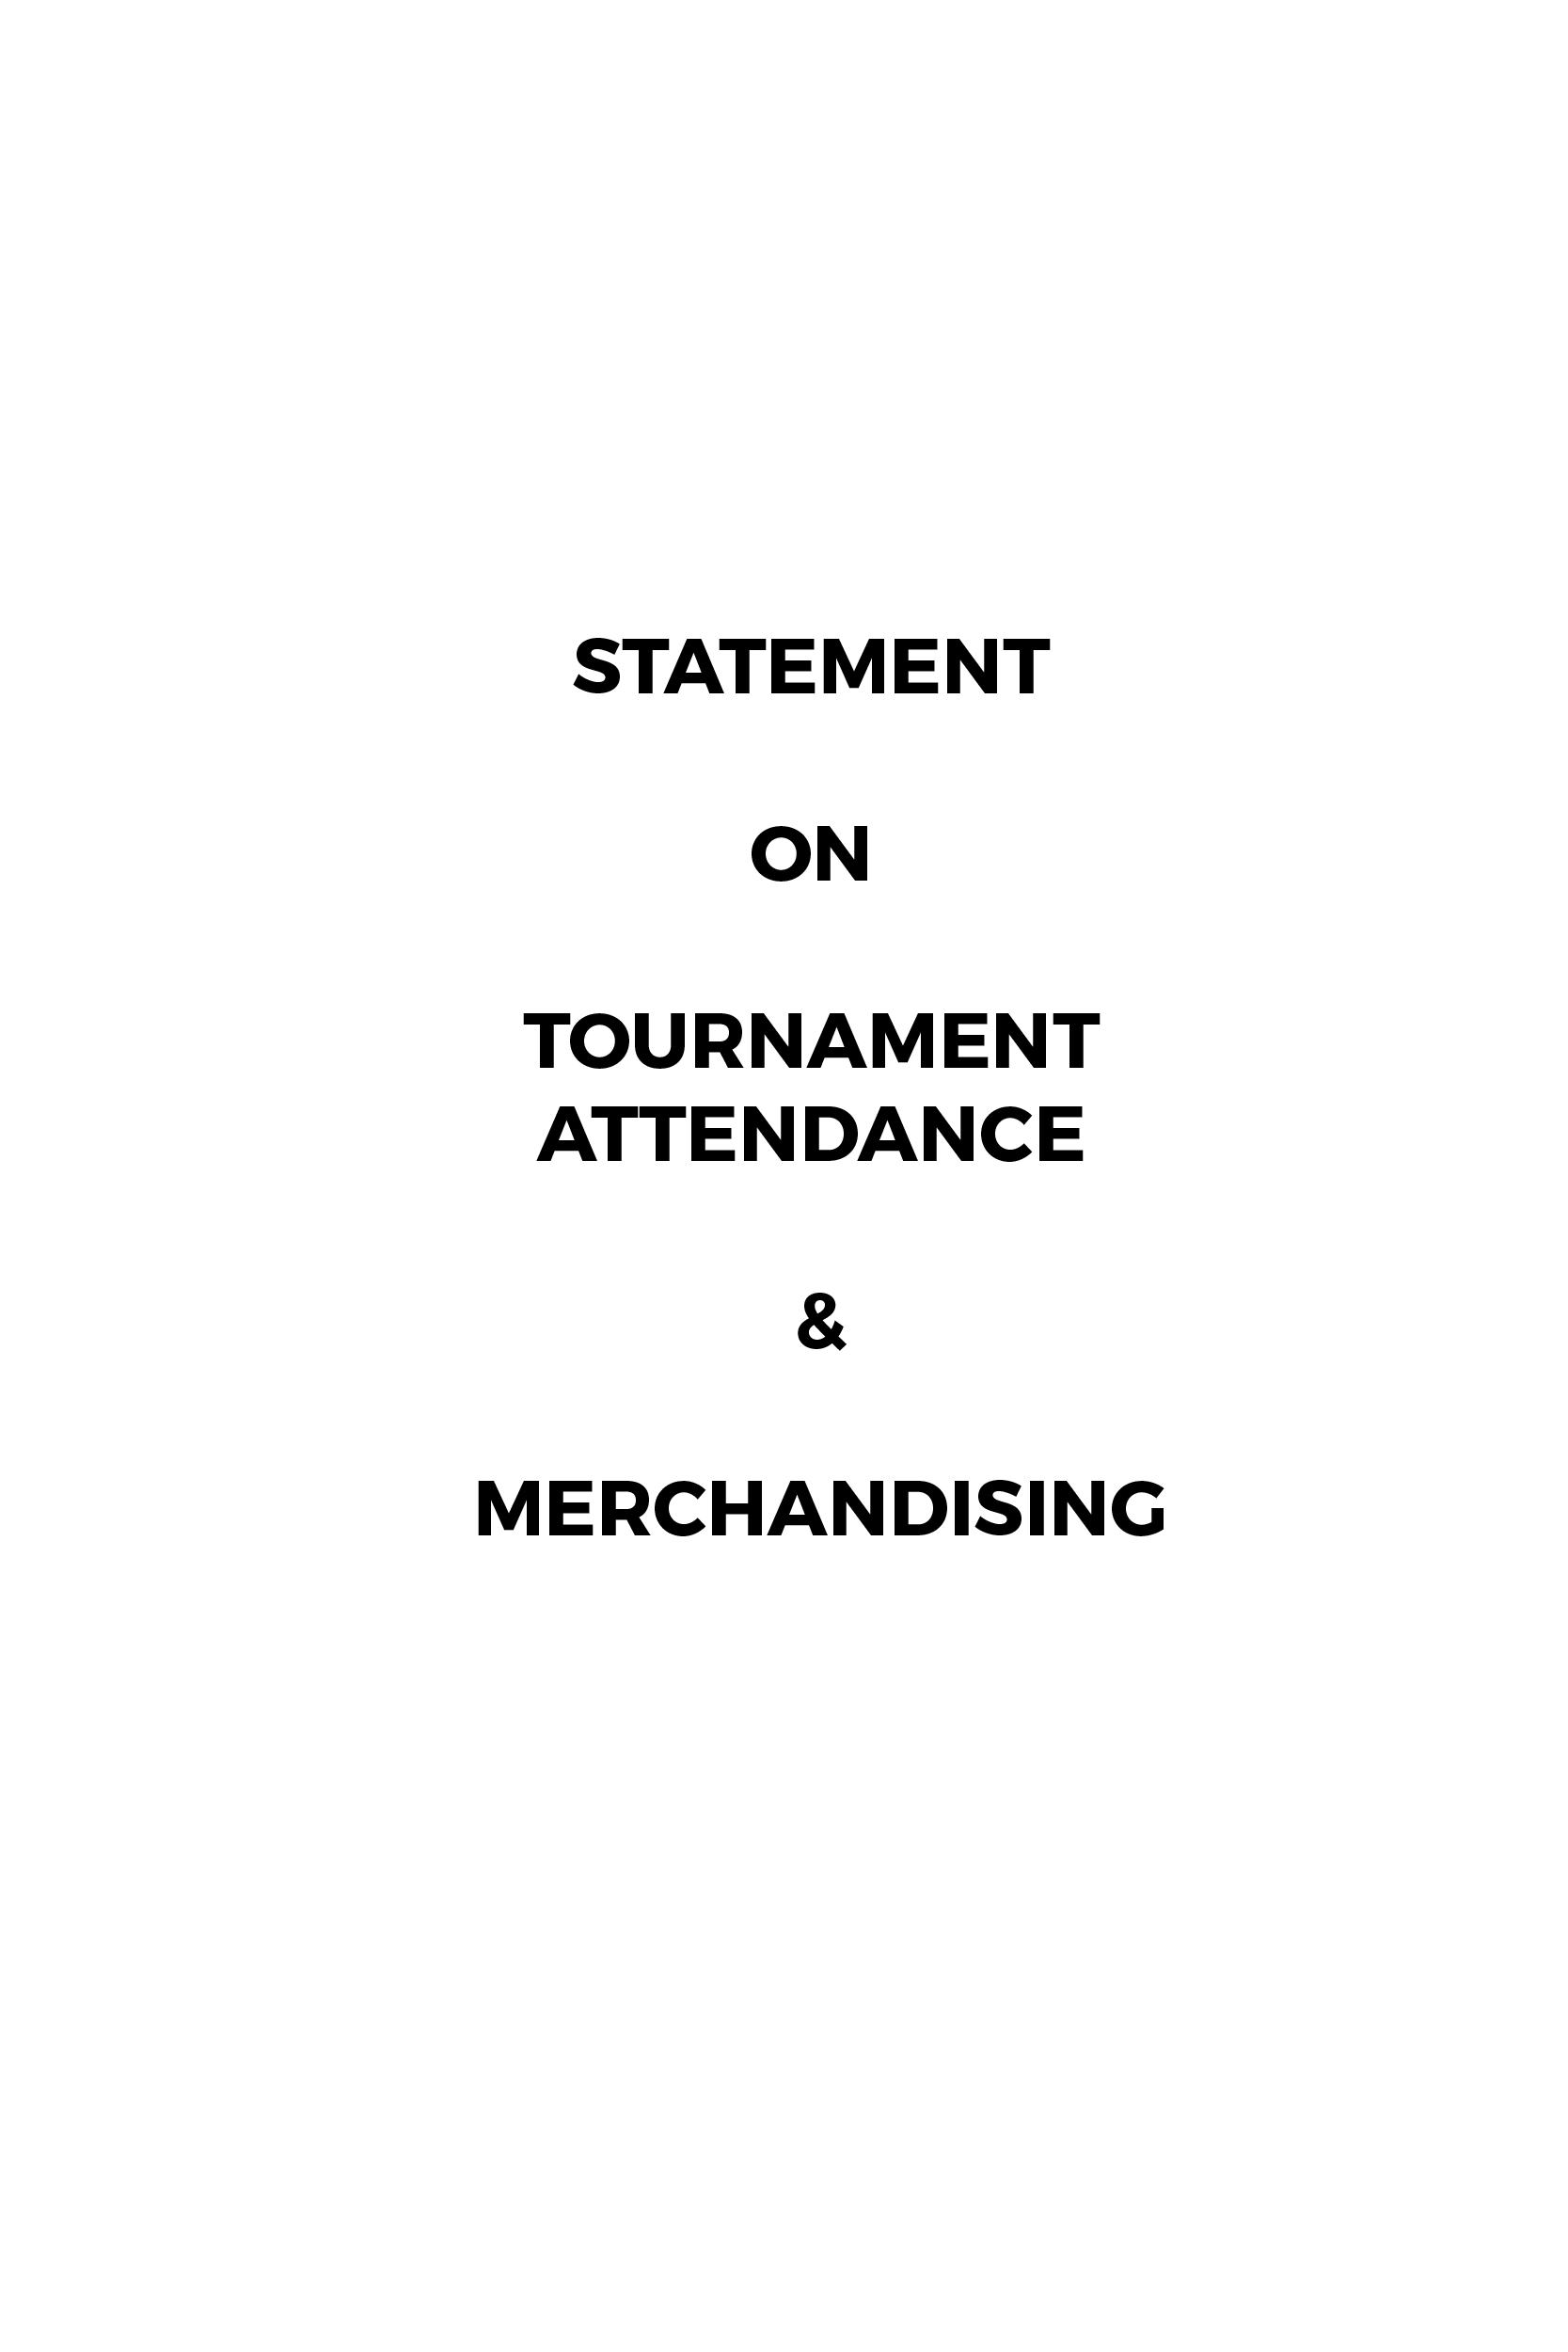 Statement on tournament attendance and merchandising